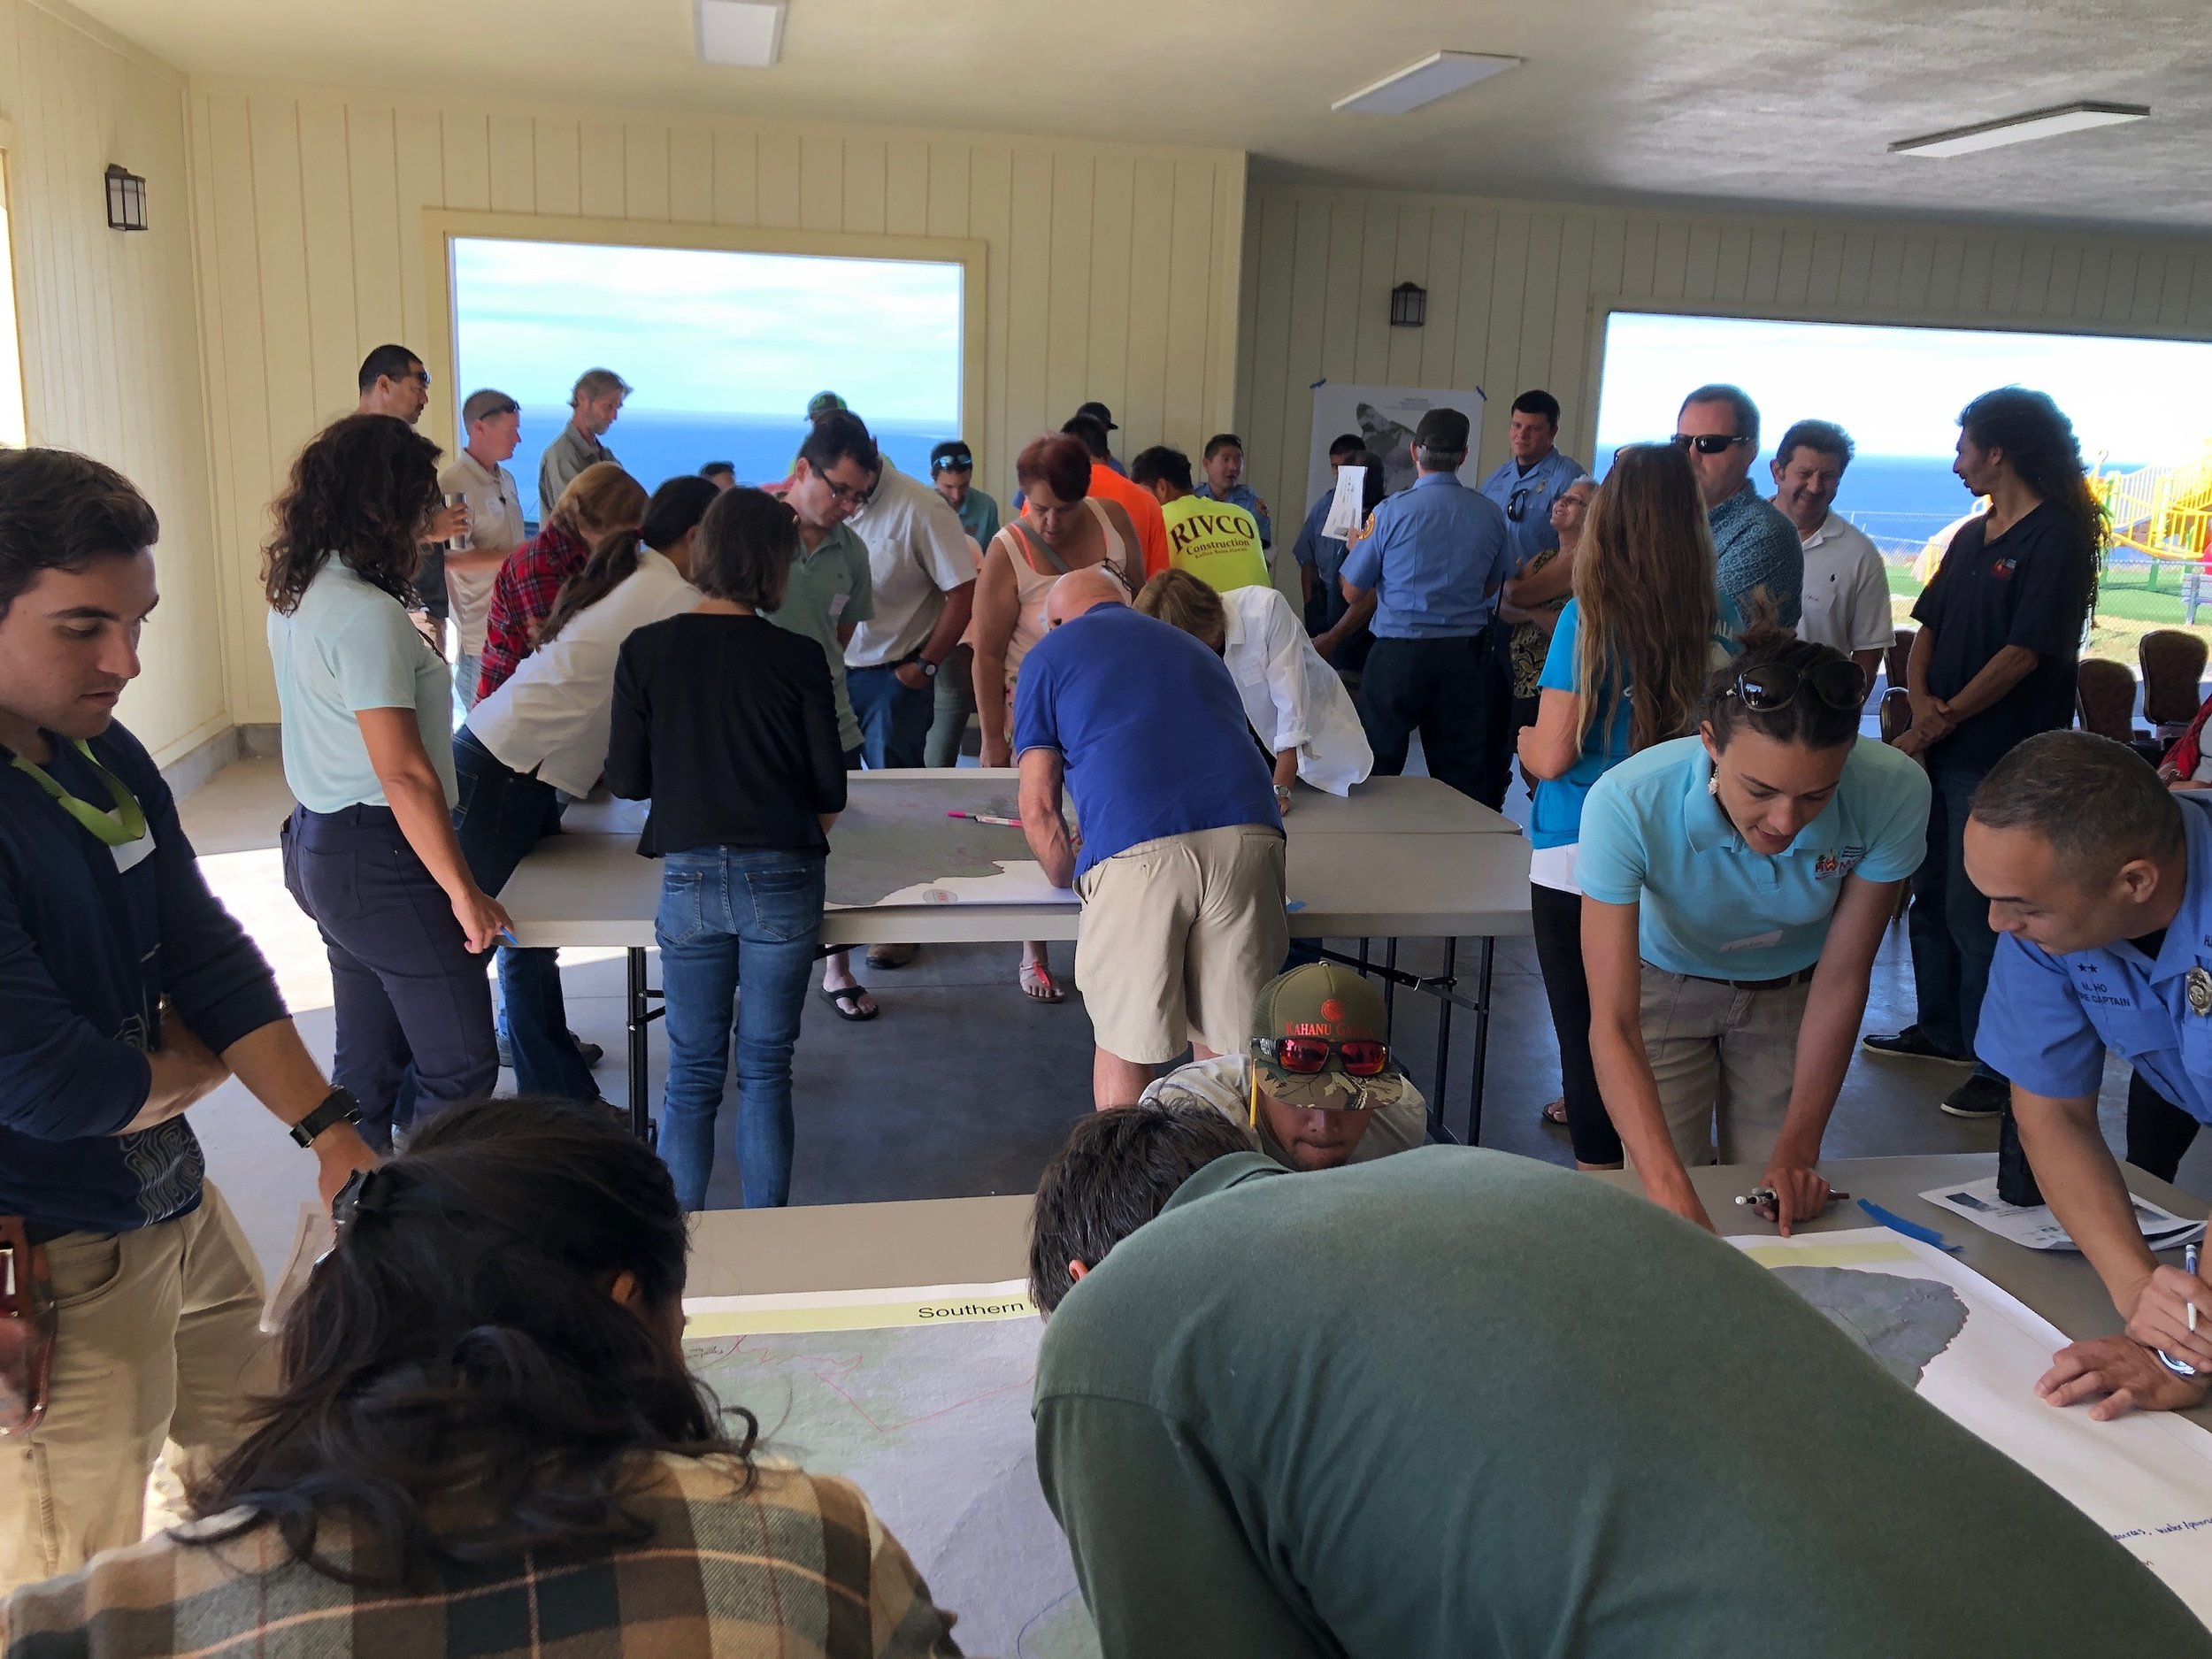 Hawaii Island Kailapa Vegetative Fuels Management Collaborative Action Planning Workshop_2_26_2019_34.jpg